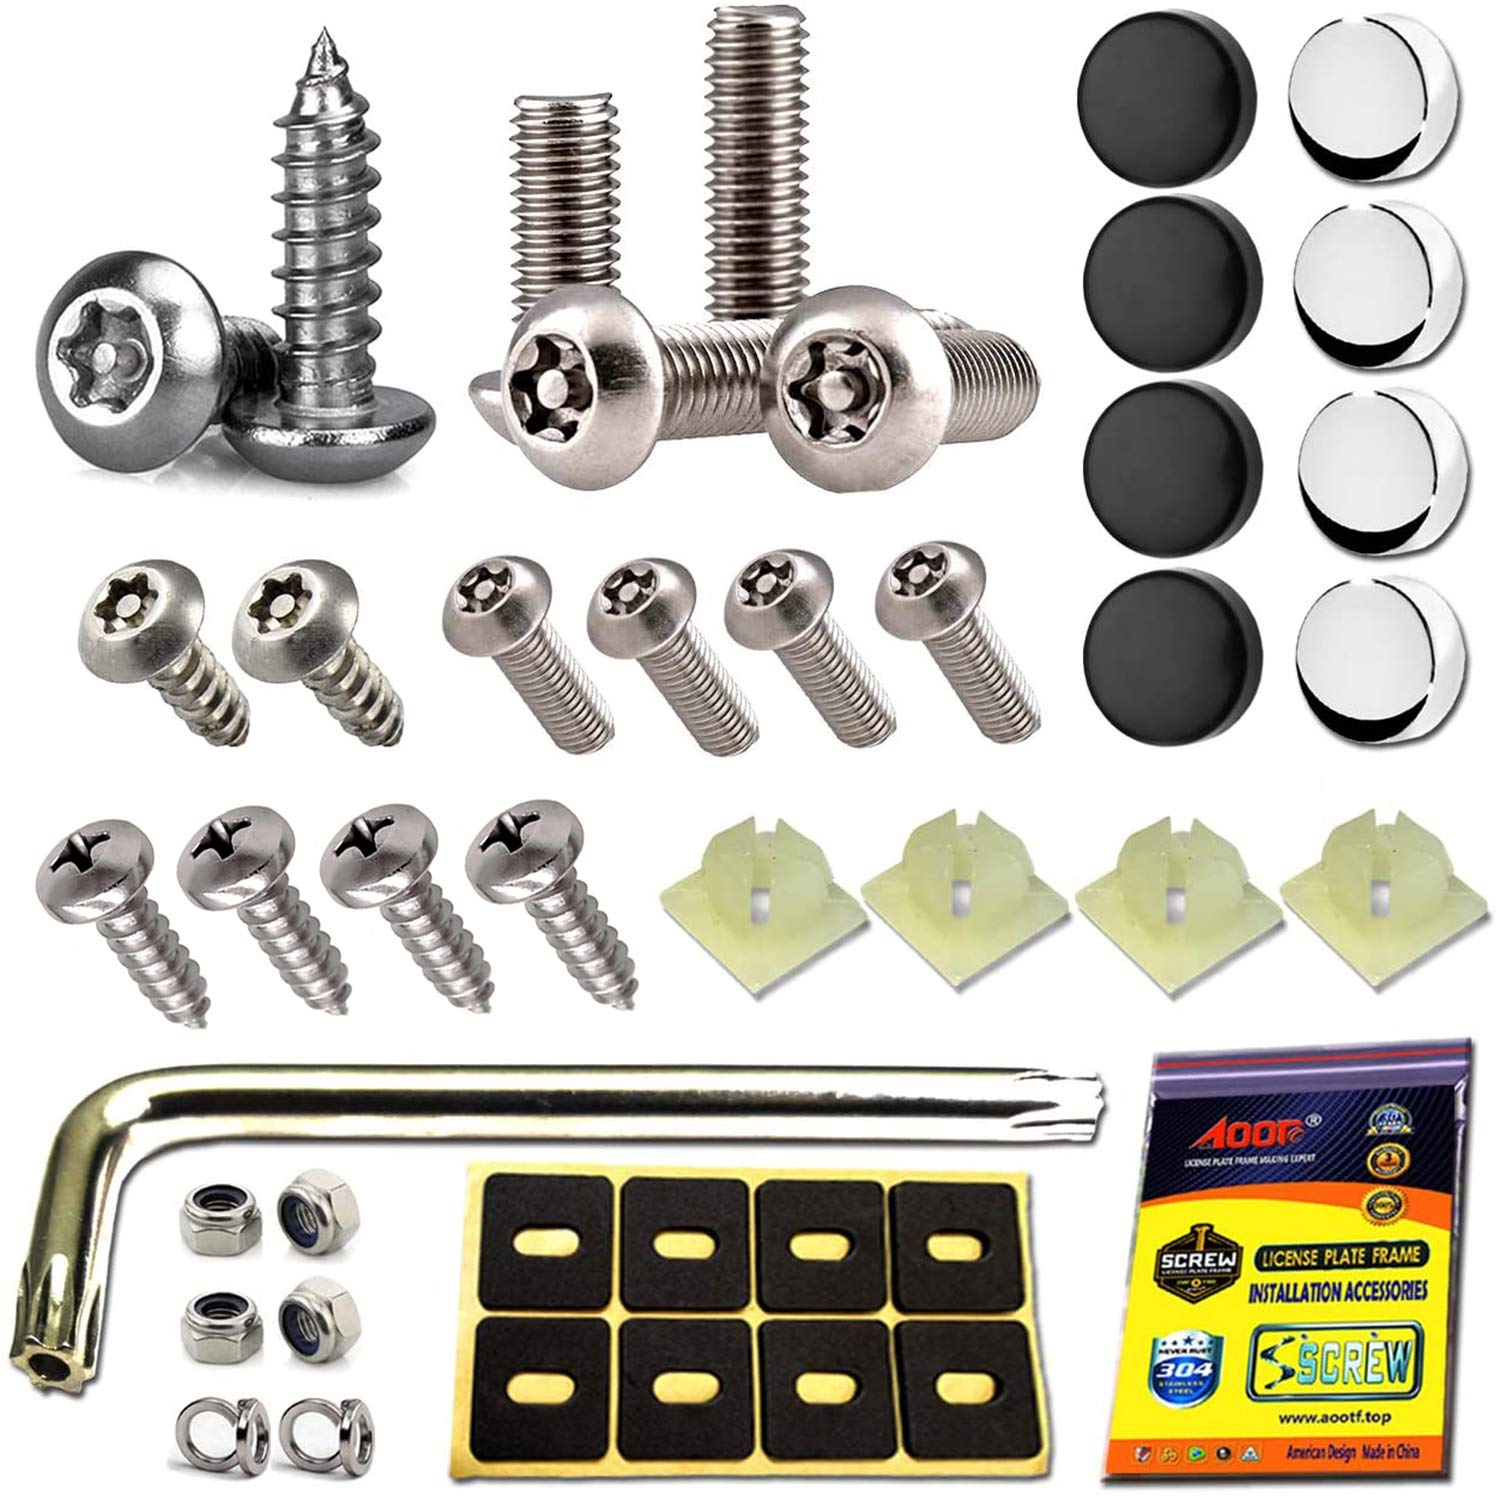 4Pcs Car Stainless Anti Theft Anti-Tamper License Plate Screws Durable Security